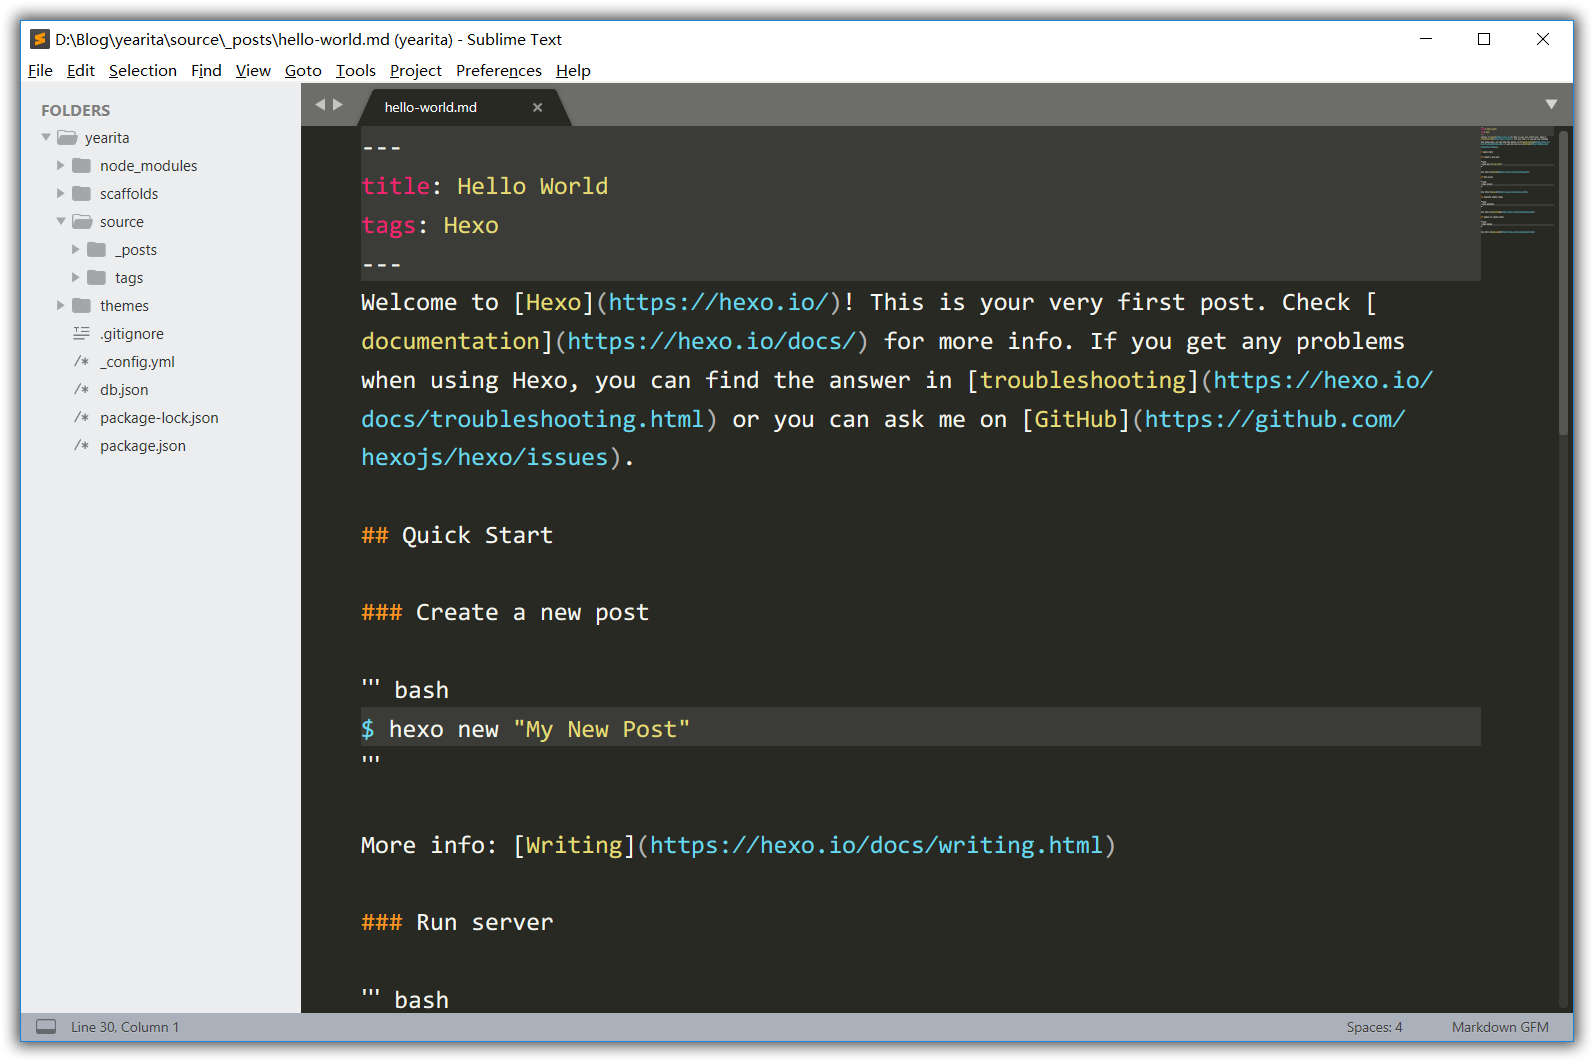 Sublime Text 3 用户界面